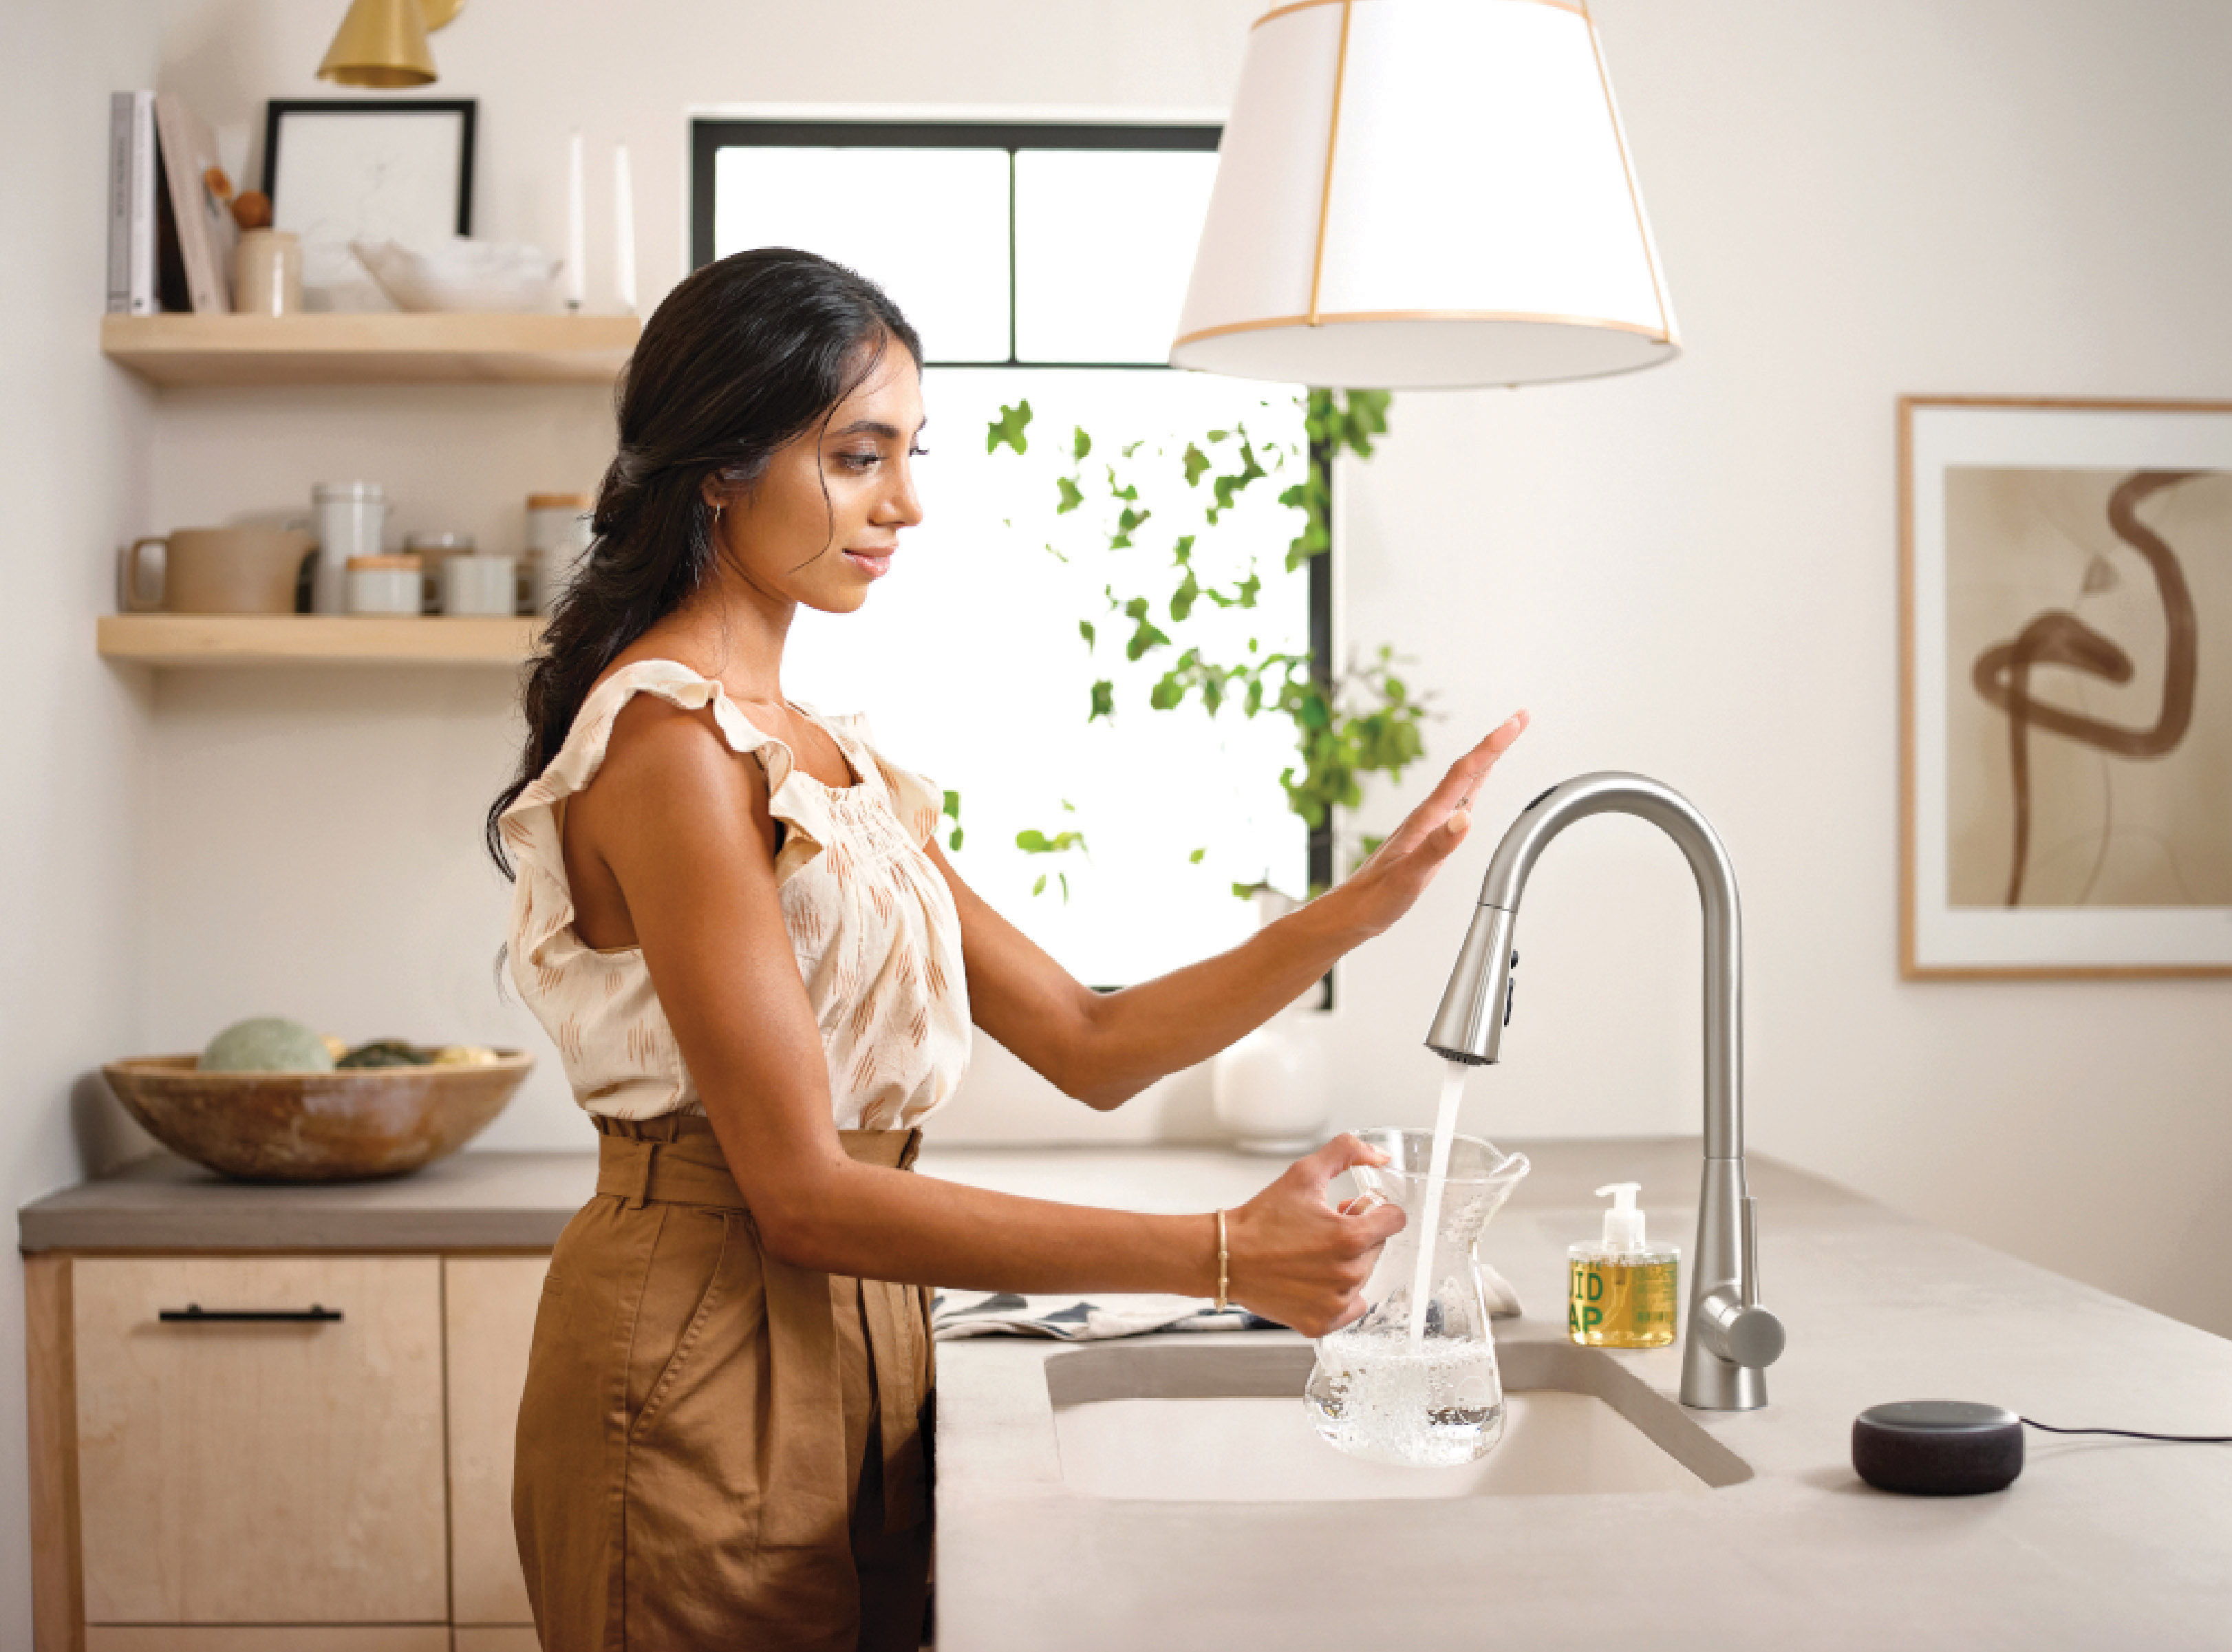 woman filling up a jug with water at her kitchen sink